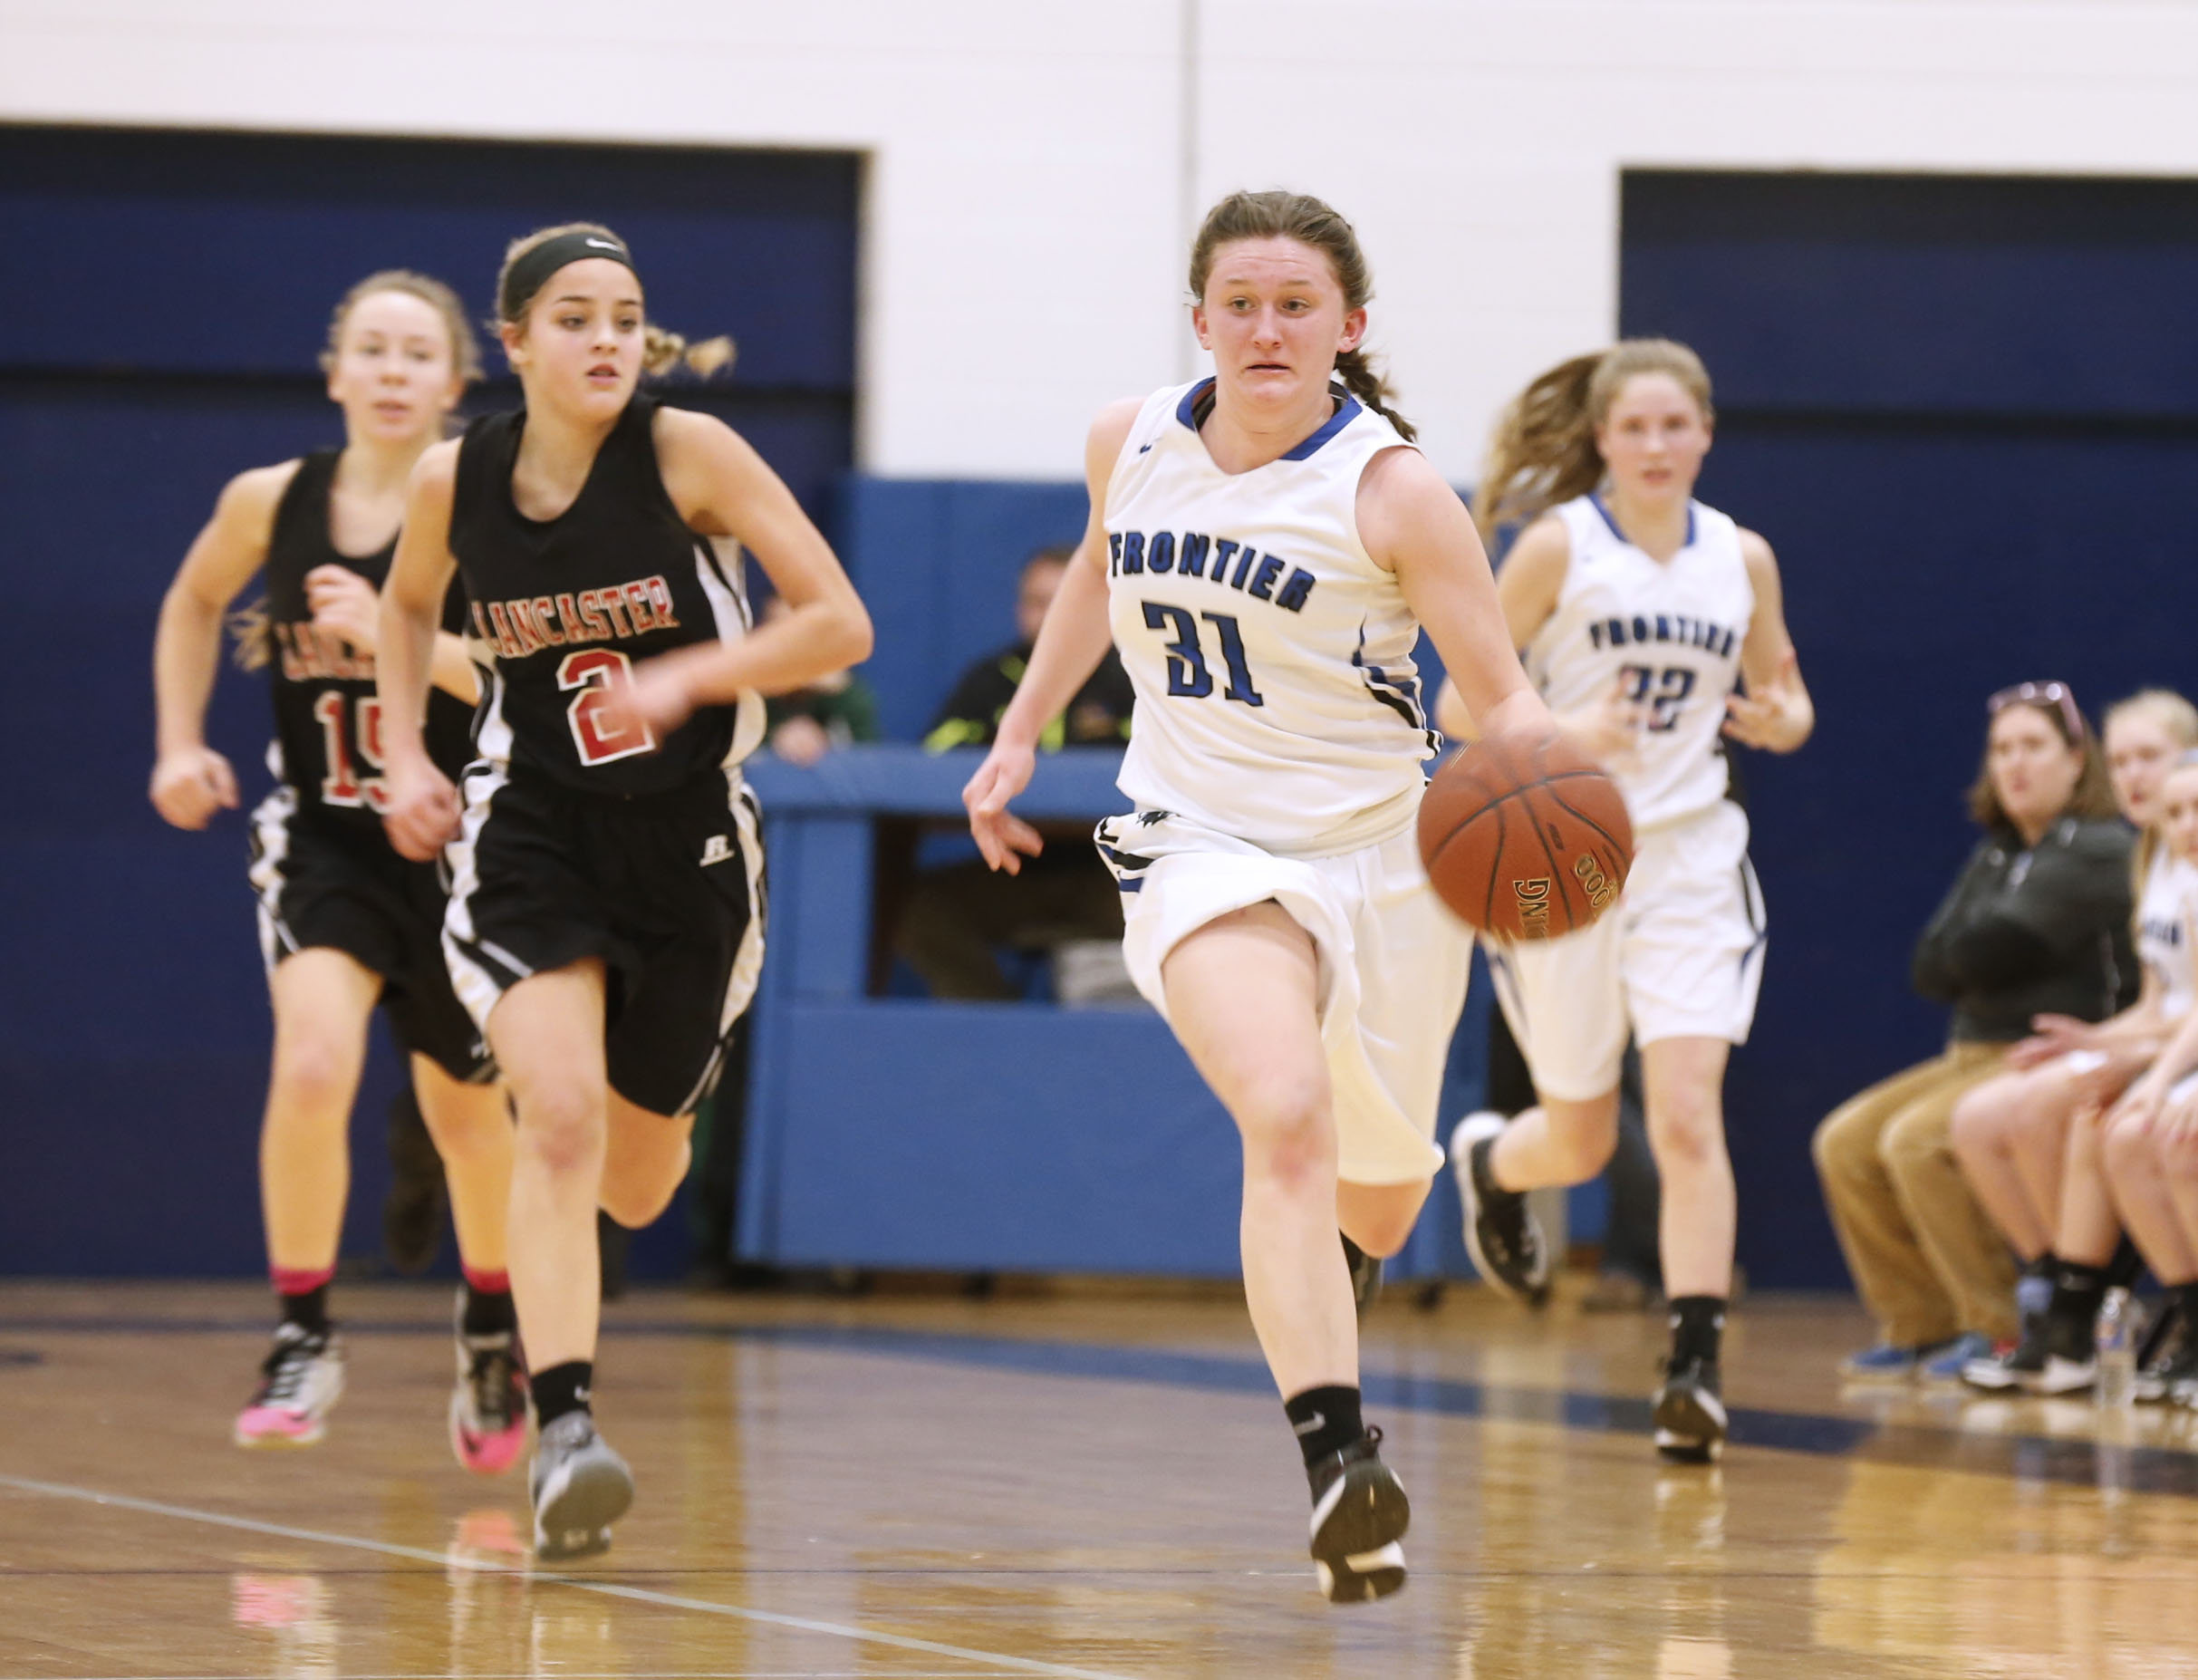 Frontier's Claire Kruska drives after a steal against Lancaster Friday in a Section VI Class AA semifinal.  (Robert Kirkham/Buffalo News)